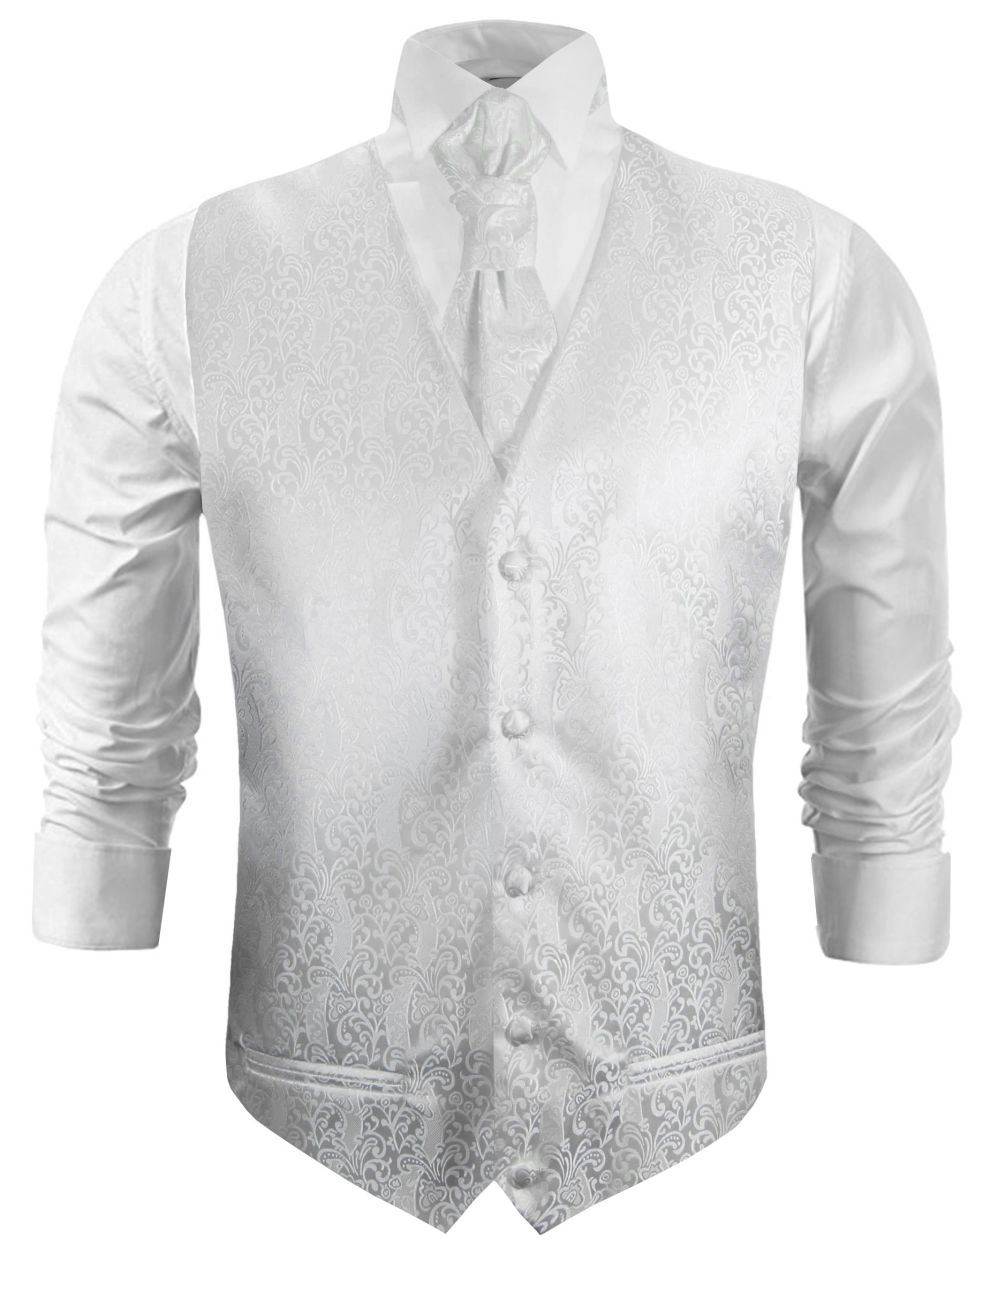 White barock wedding vest paisley waistcoat with cravat